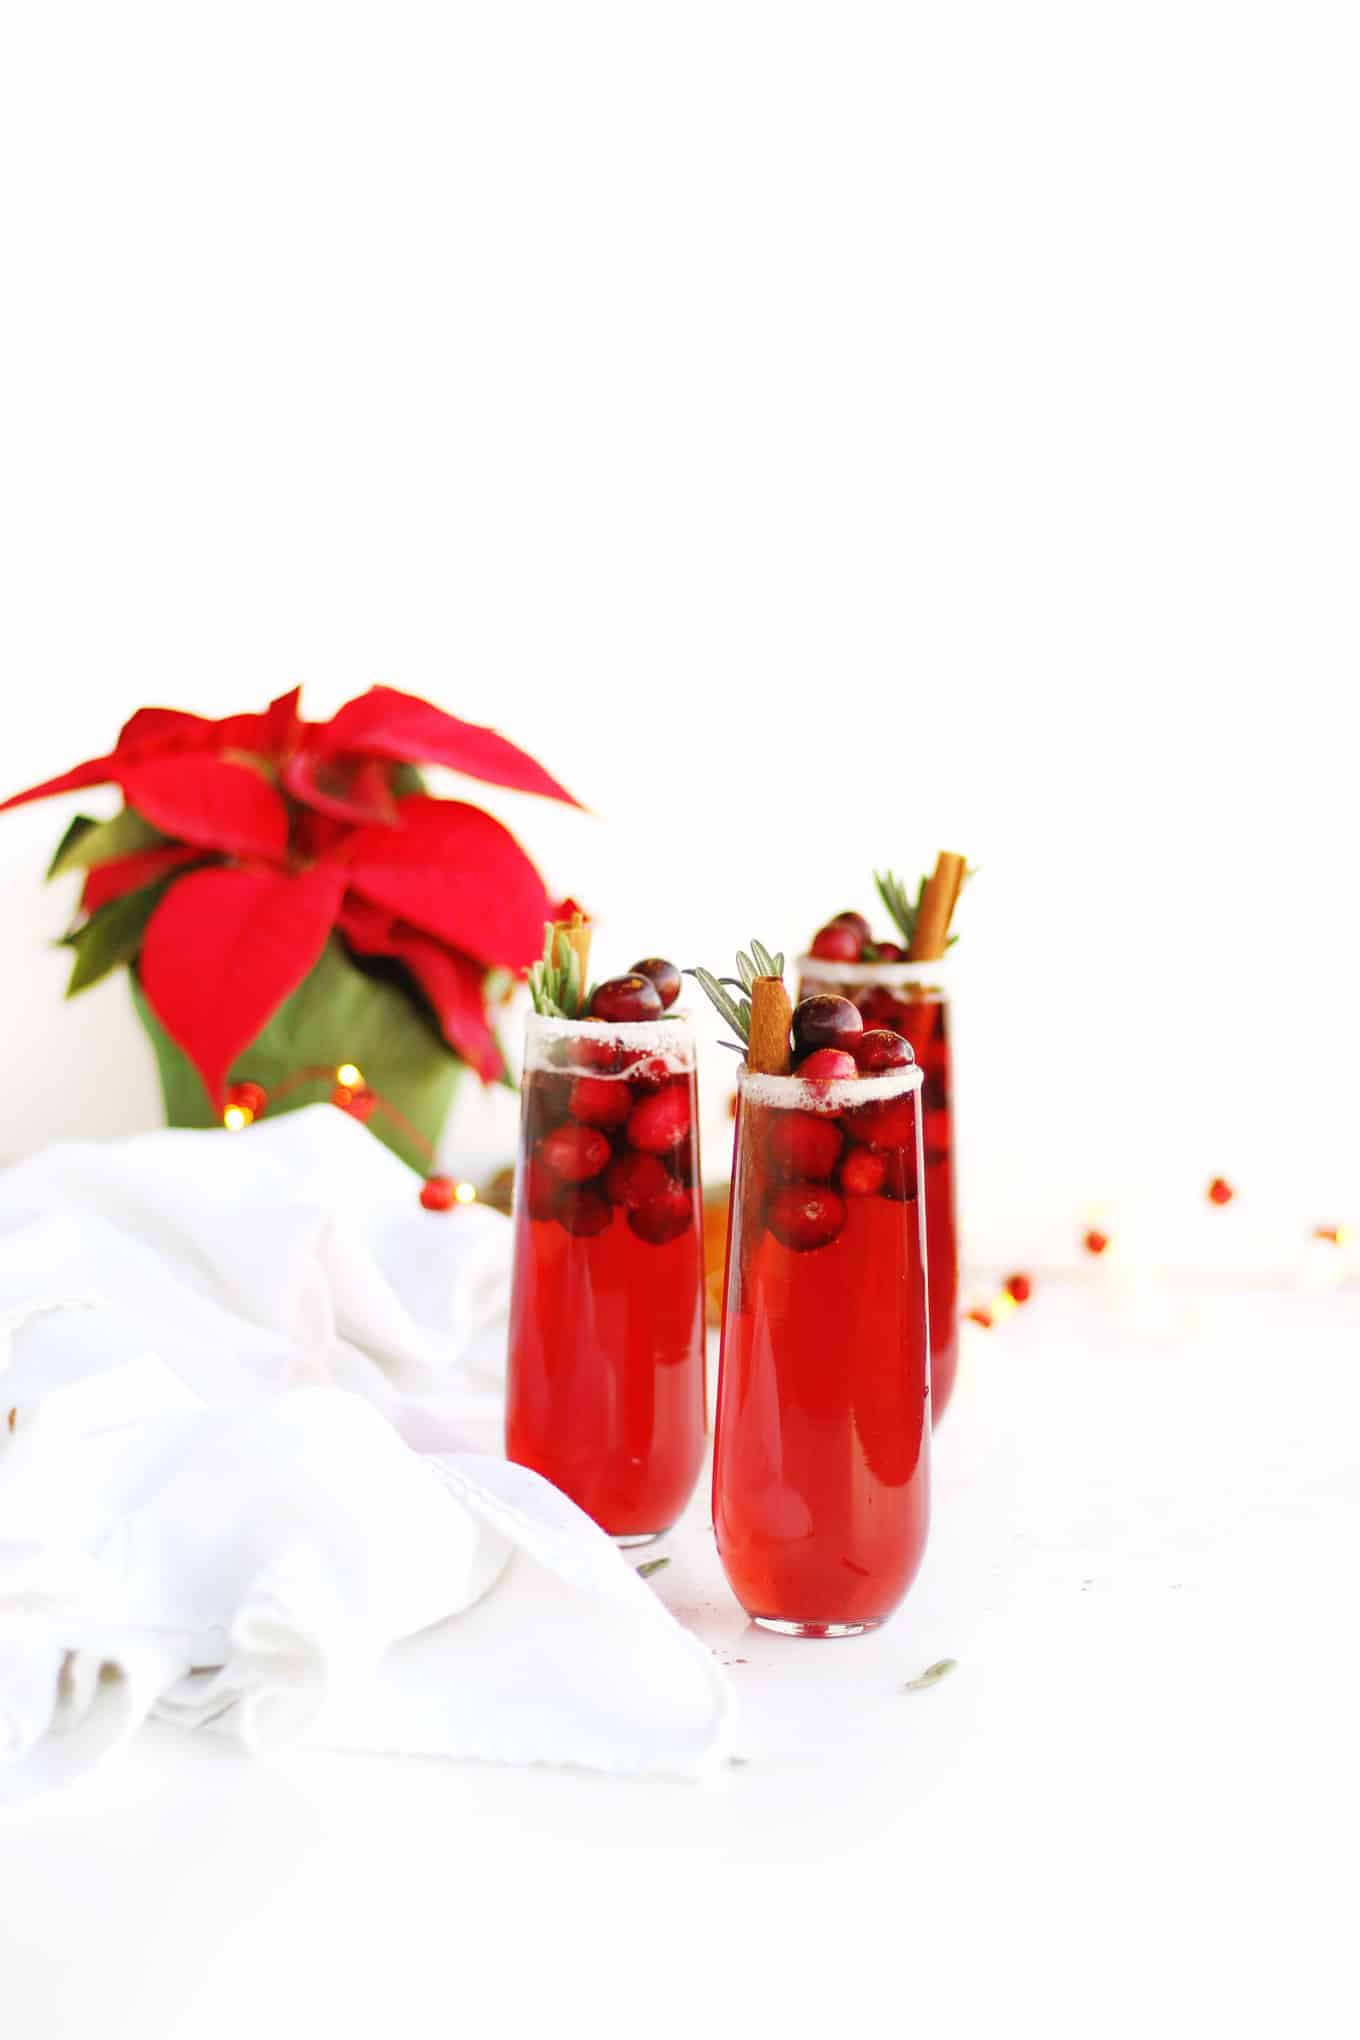 cranberry mimosa holiday mocktail or cocktail